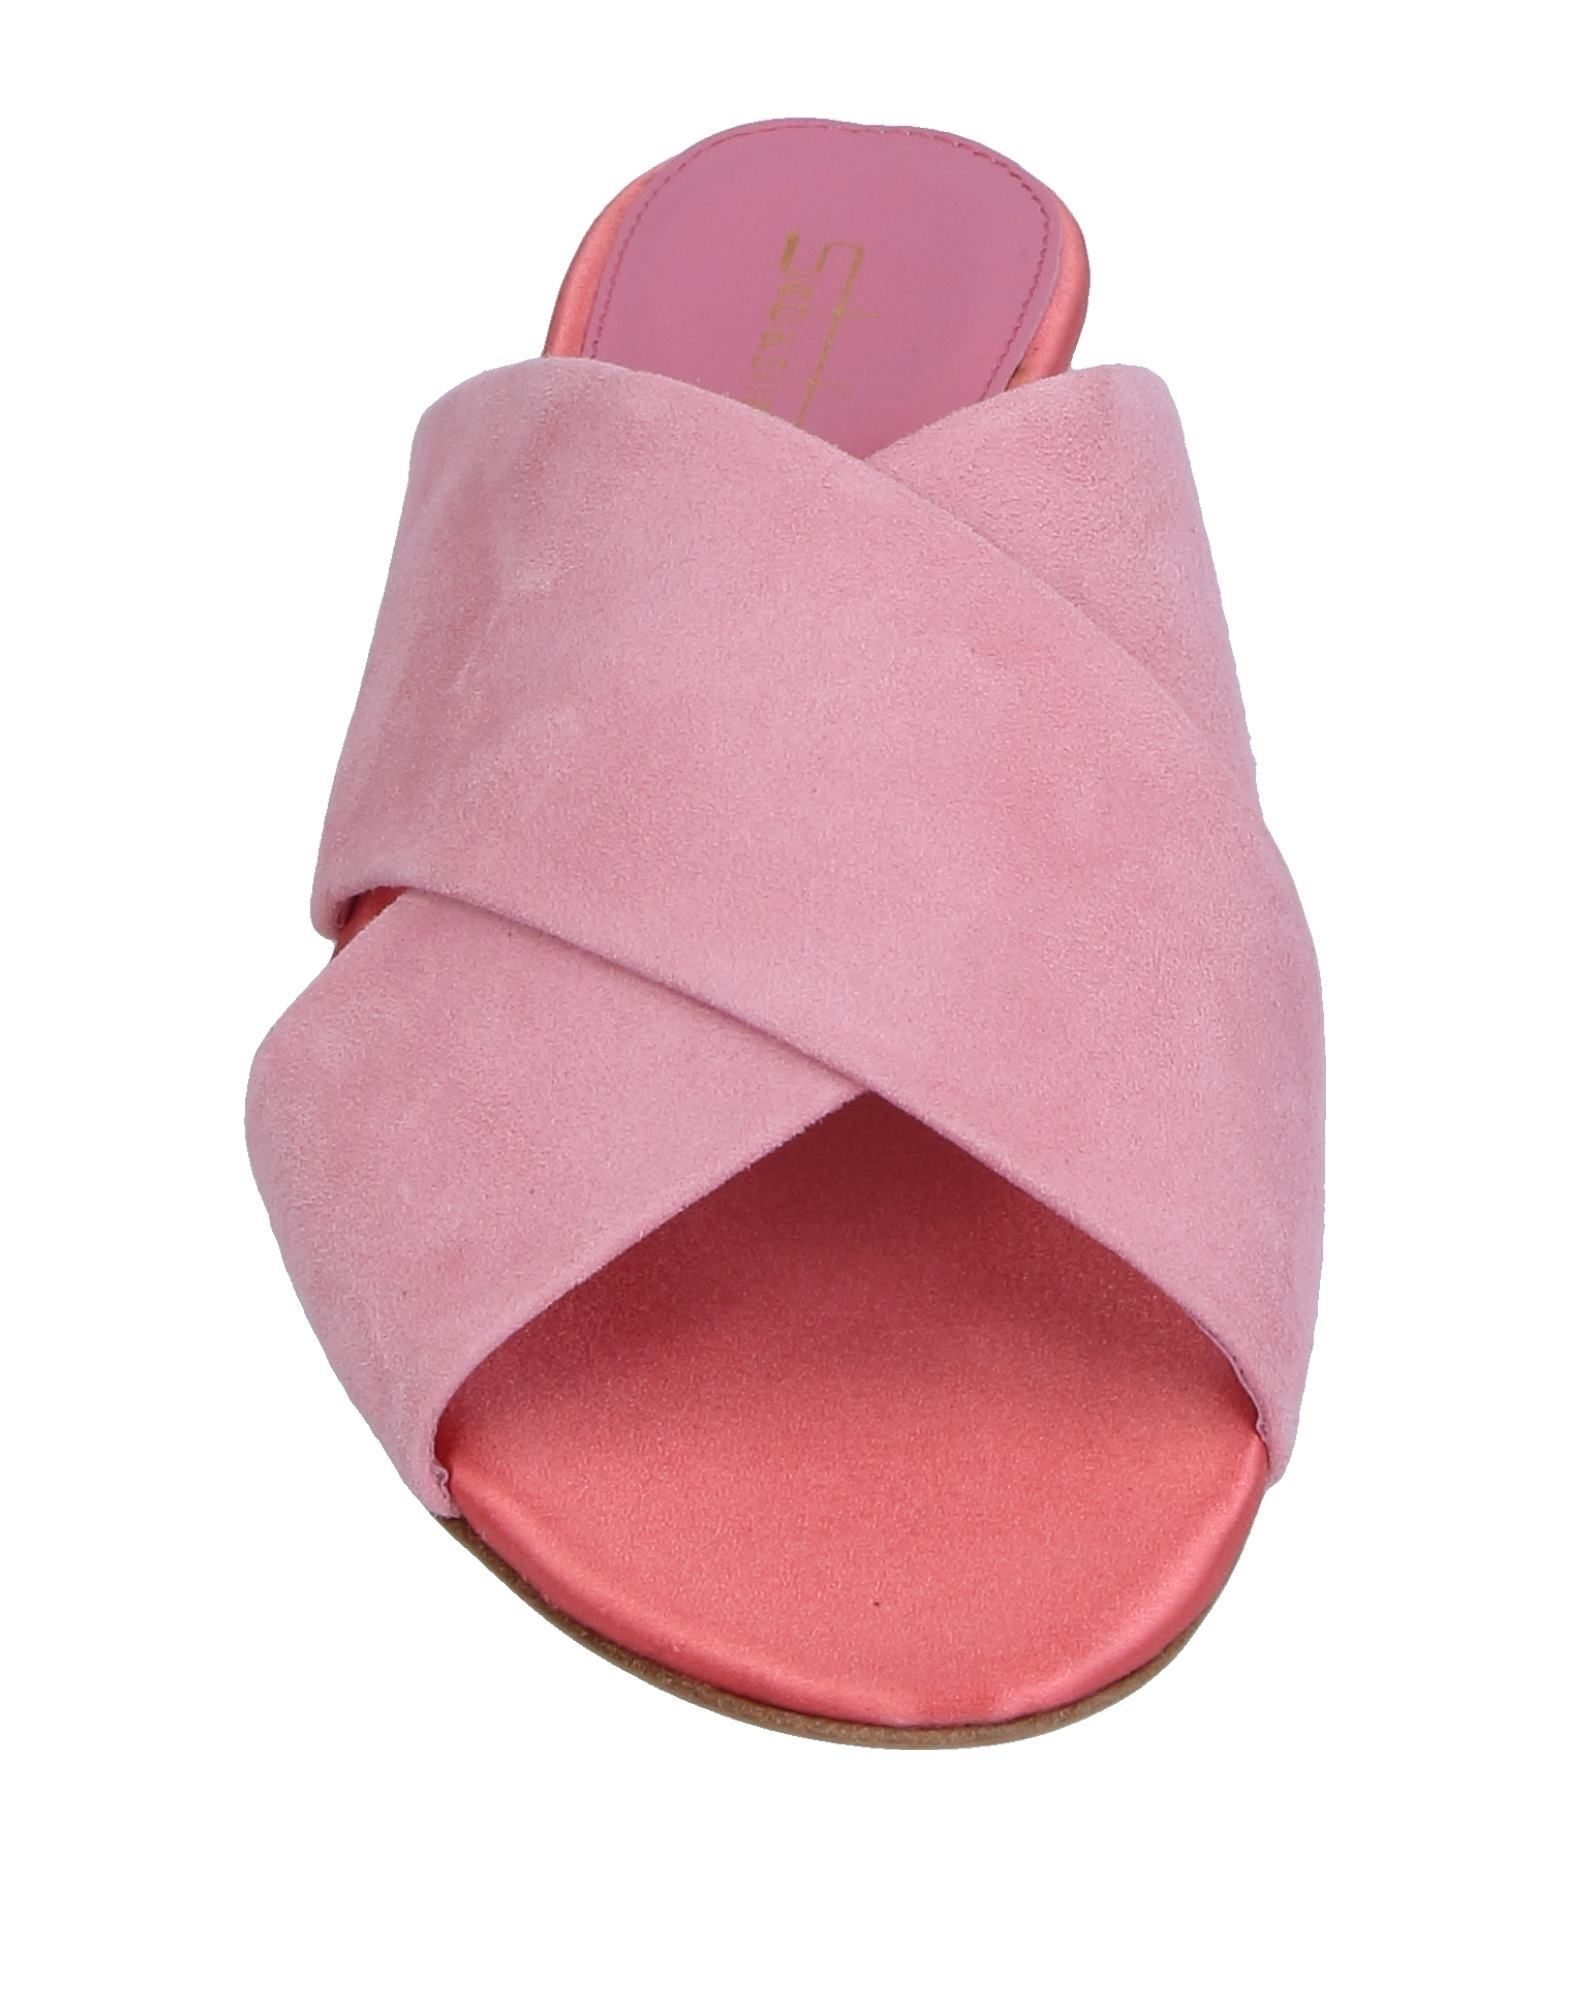 FOOTWEAR Sebastian Pink Woman Leather